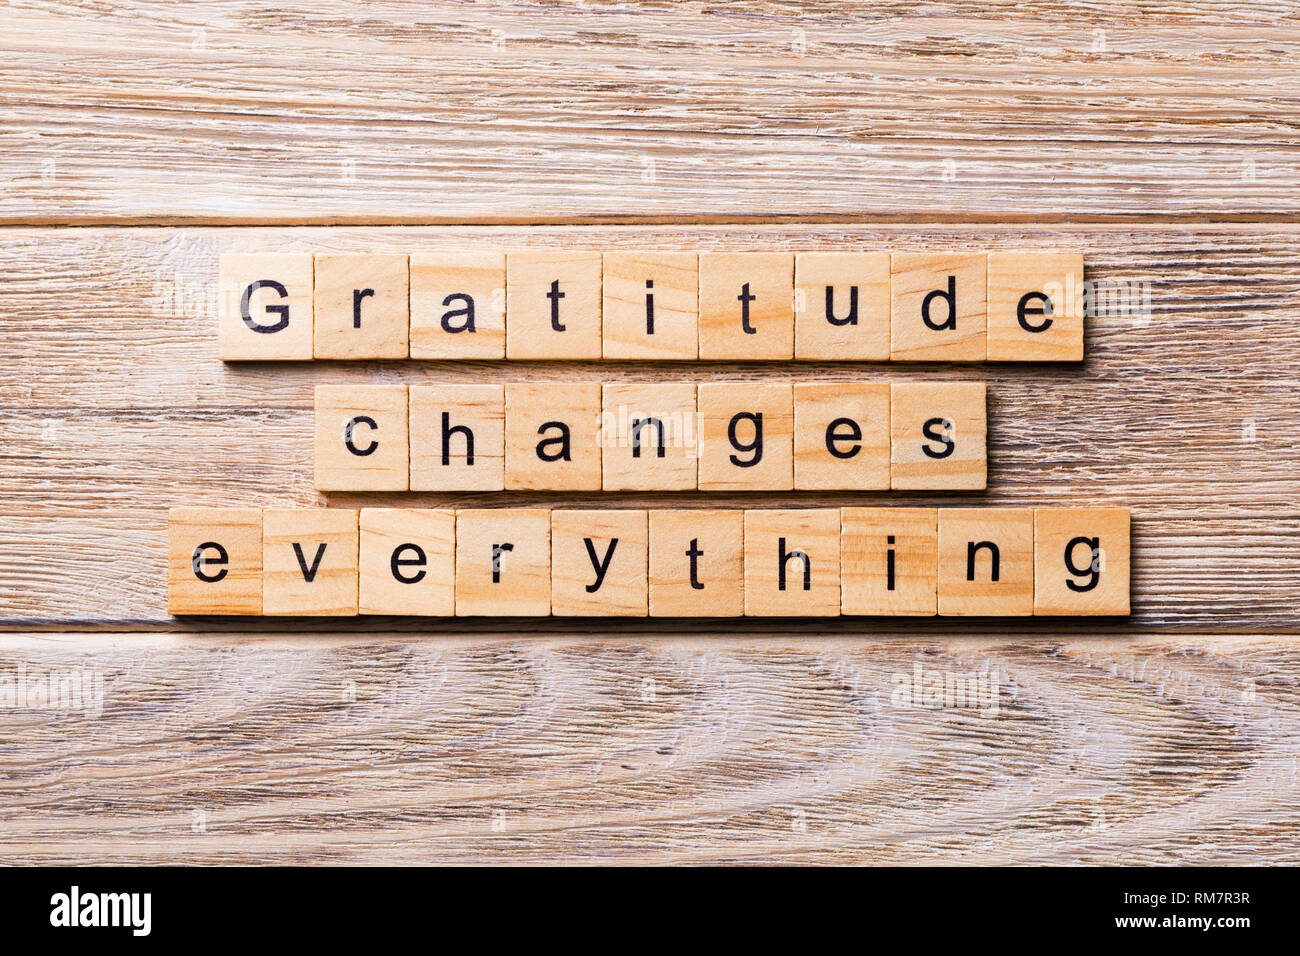 Gratitude changes everything word written on wood block. Gratitude changes everything text on wooden table for your desing, concept. - Stock Image